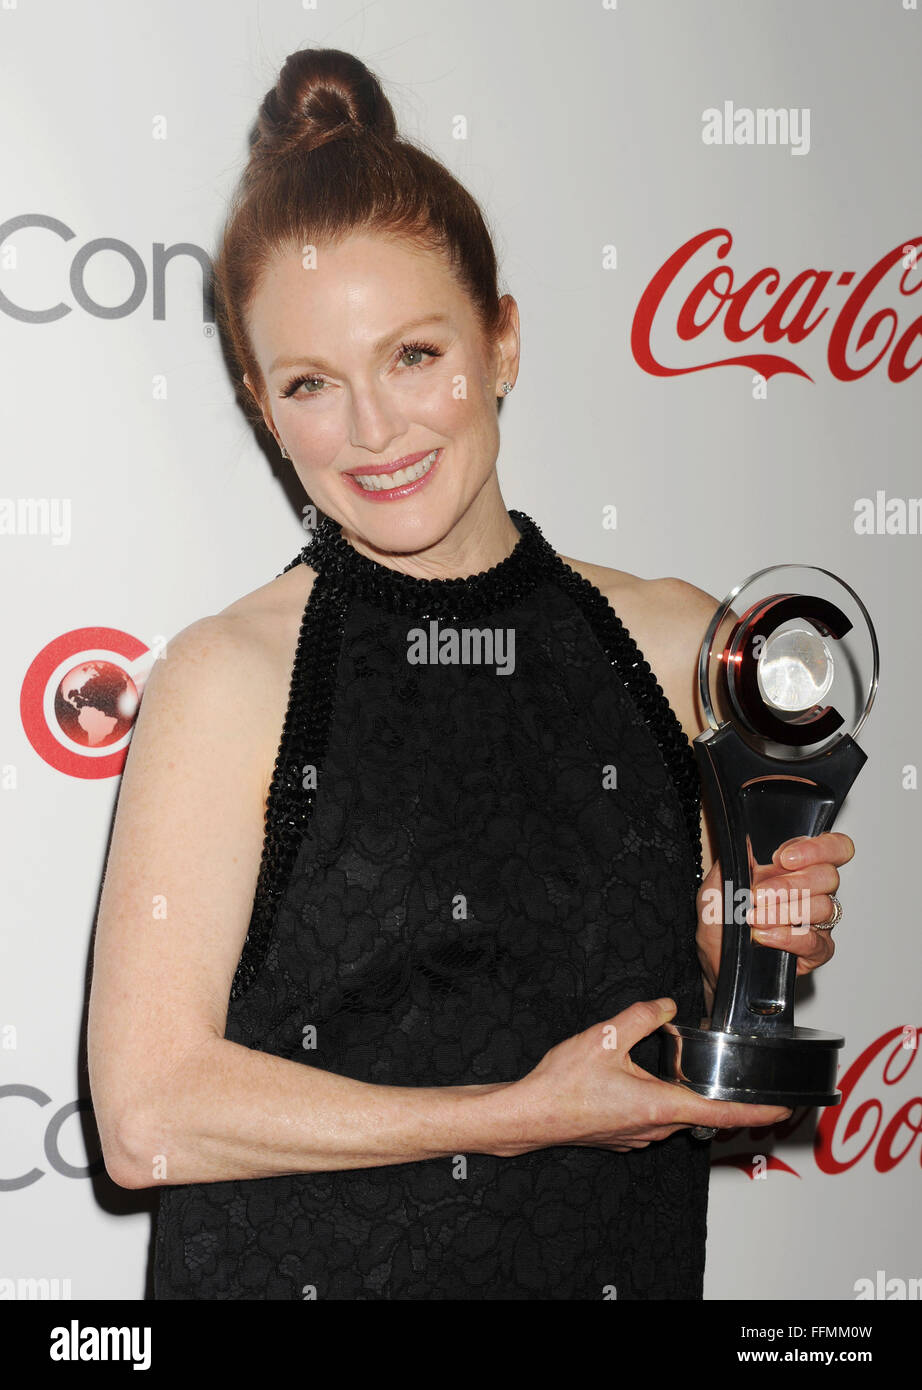 Actress Julianne Moore arrives at the 2015 CinemaCon - 2015 Big Screen Achievement Awards at Caesars Palace Resort - Stock Image